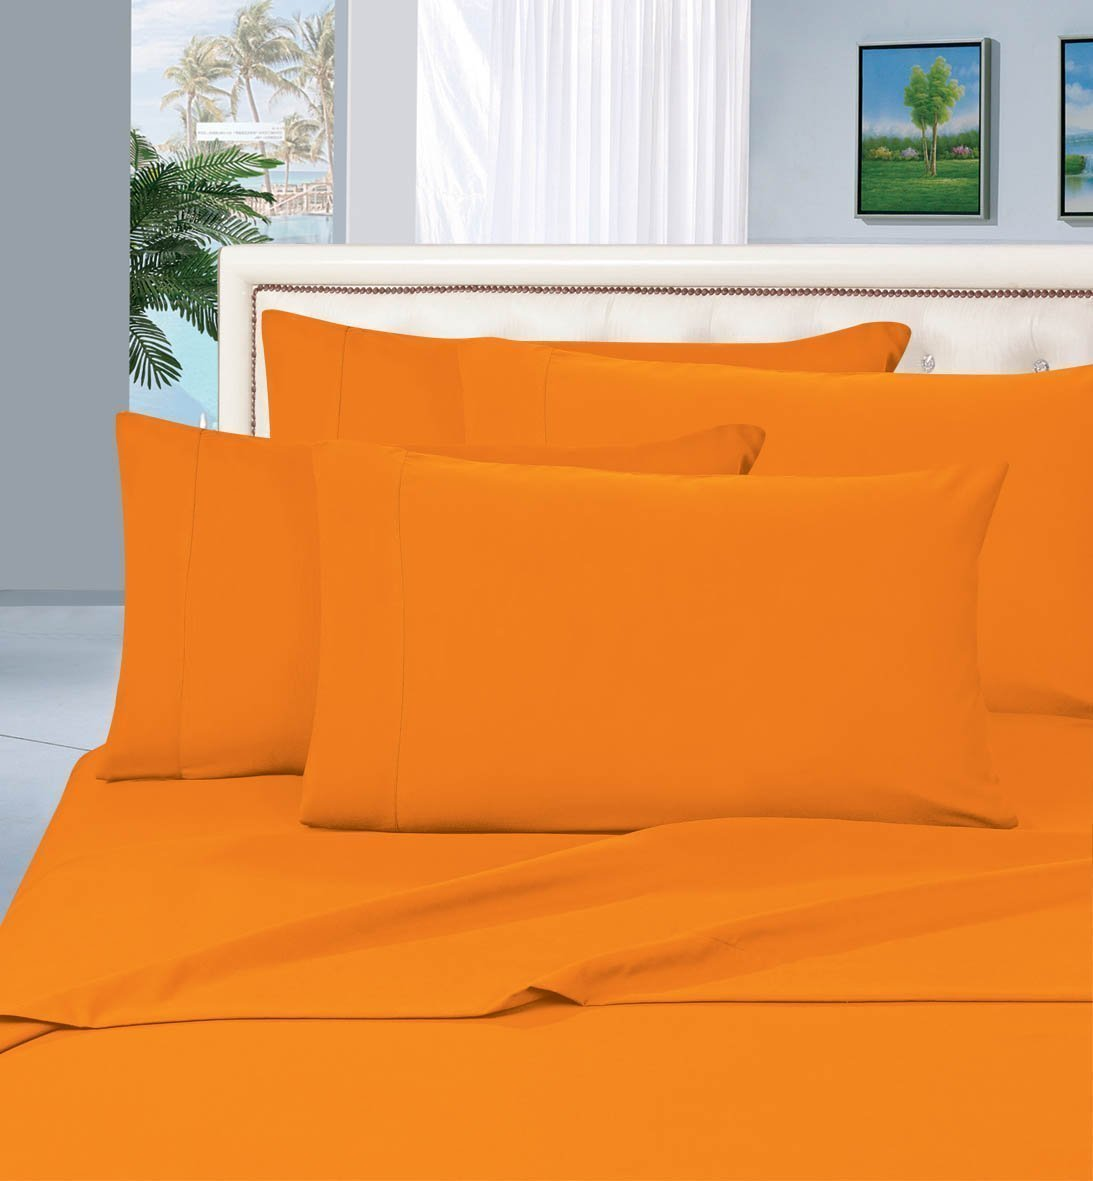 "WRINKLE & FADE RESISTANT 1500 THREAD COUNT Egyptian Quality Luxury 2-PIECE Duvet Cover Set , Twin/Twin XL, Orange, Duvet set includes 1 Duvet Cover 69"" x 90"".., By Elegant Comfort"